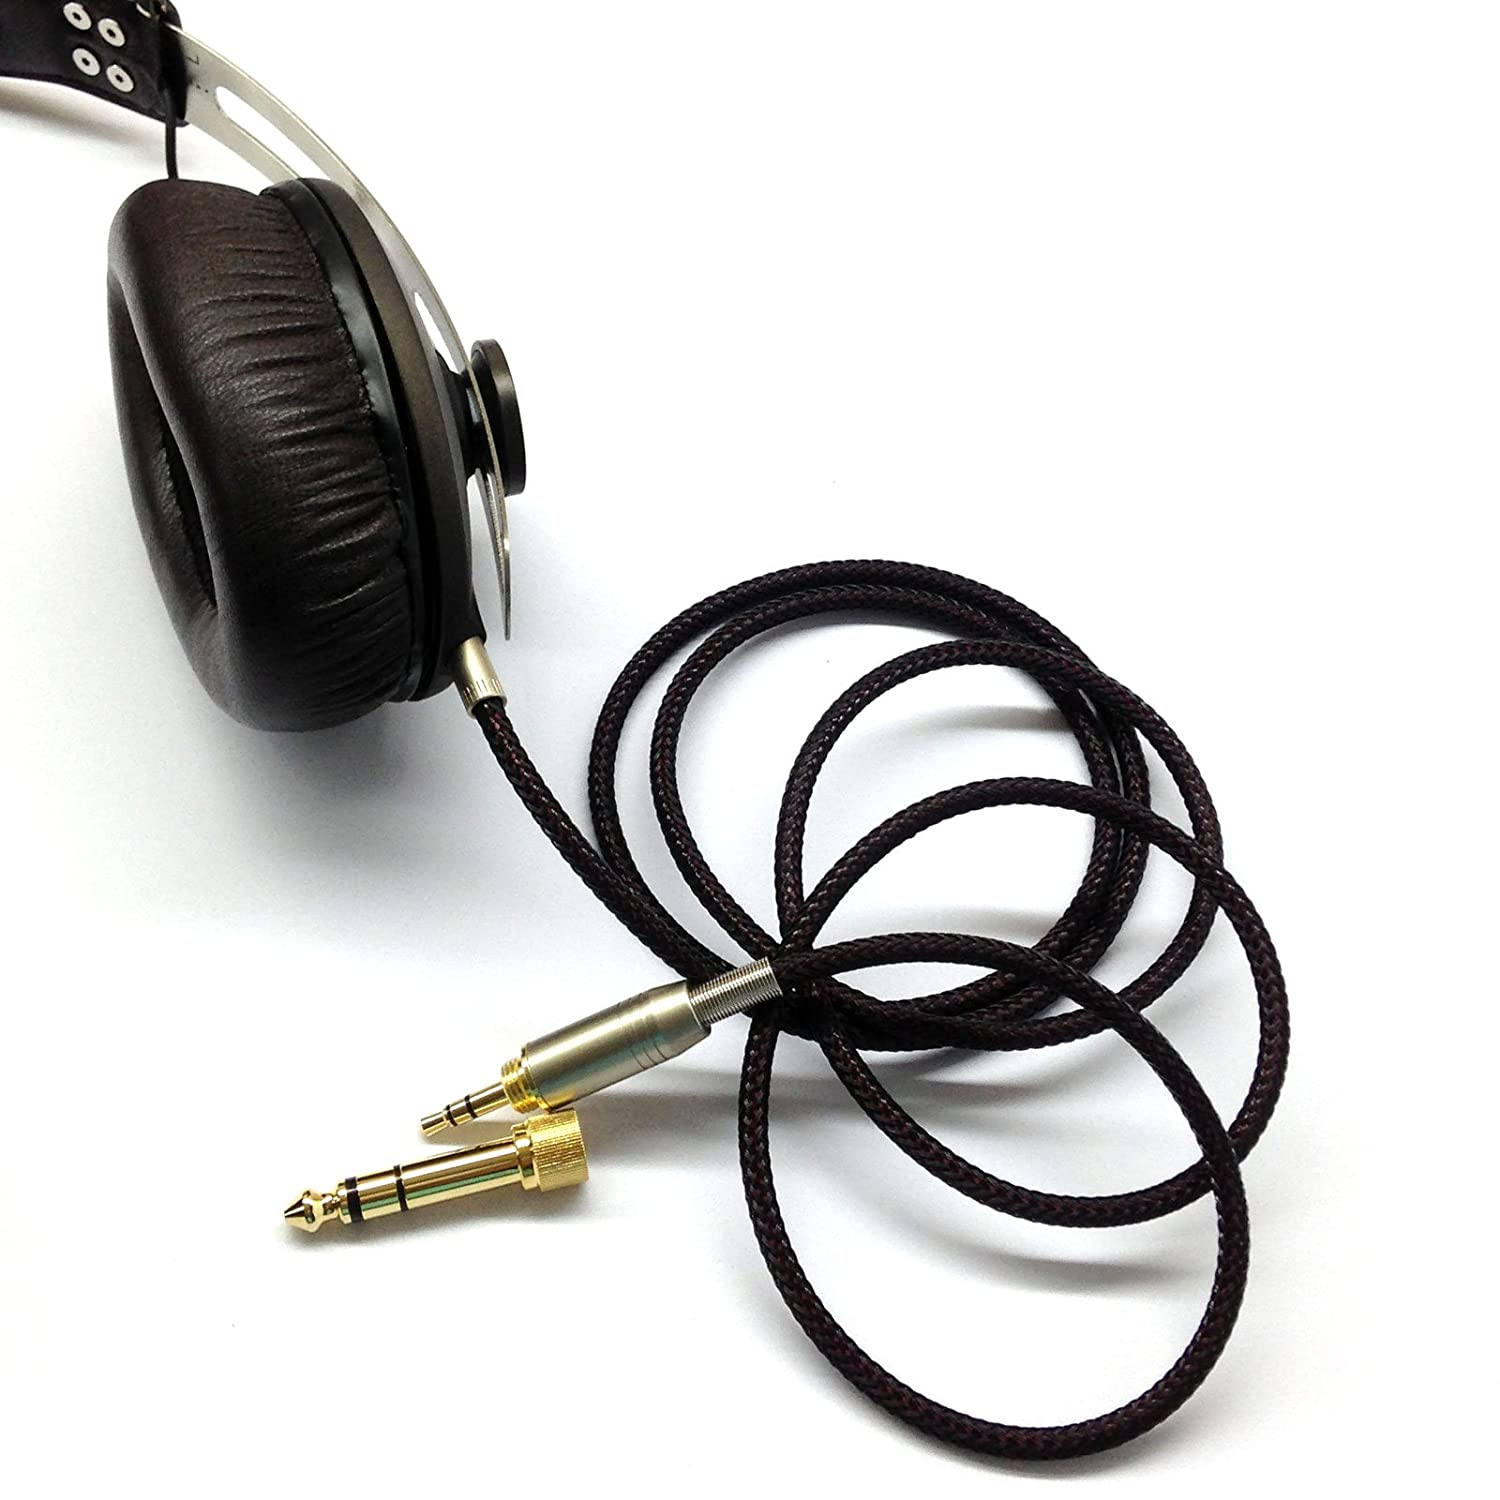 Newfantasia Replacement Audio Upgrade Cable For Sennheiser Momentum 2i Black 20 Hd1 Over Ear On Headphones 18meters 59feet